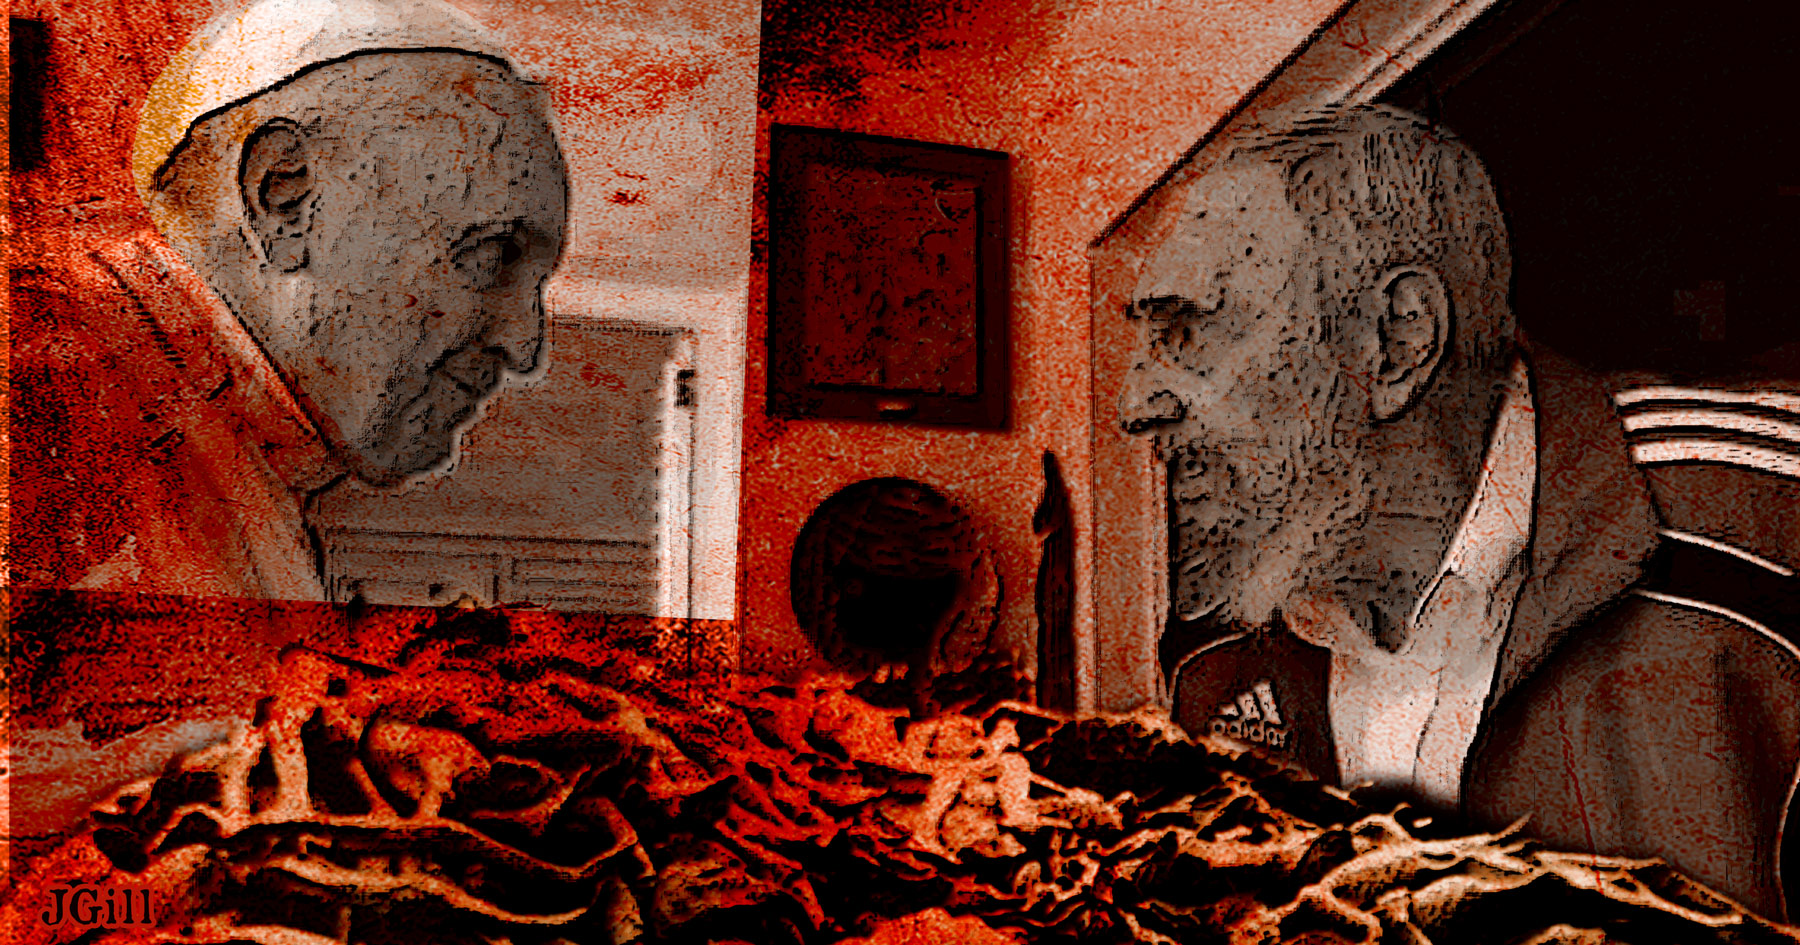 Pope, Castro, Vatican, Cuba, collage, photomontage, illustration, Paul Jacob, James Gill, Common Sense